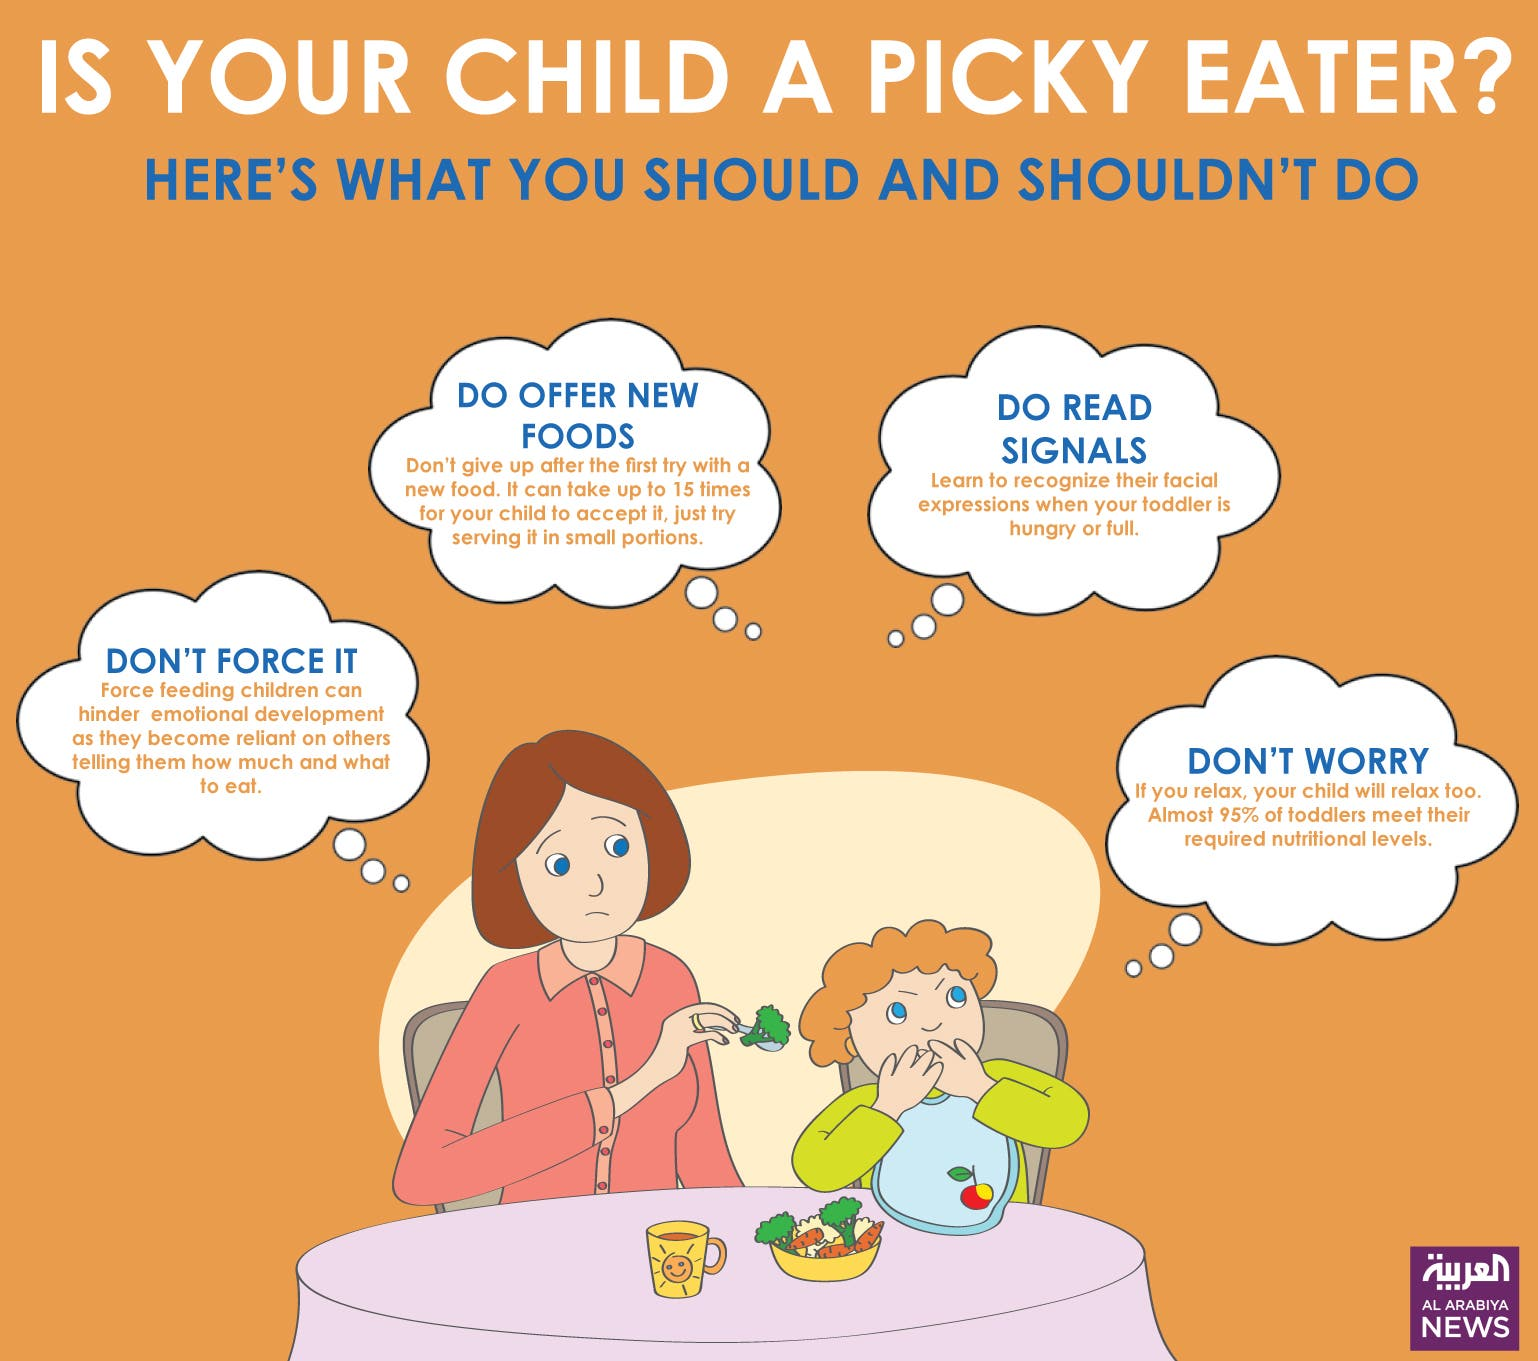 Infographic: Is your child a picky eater? Here's what you should and shouldn't do